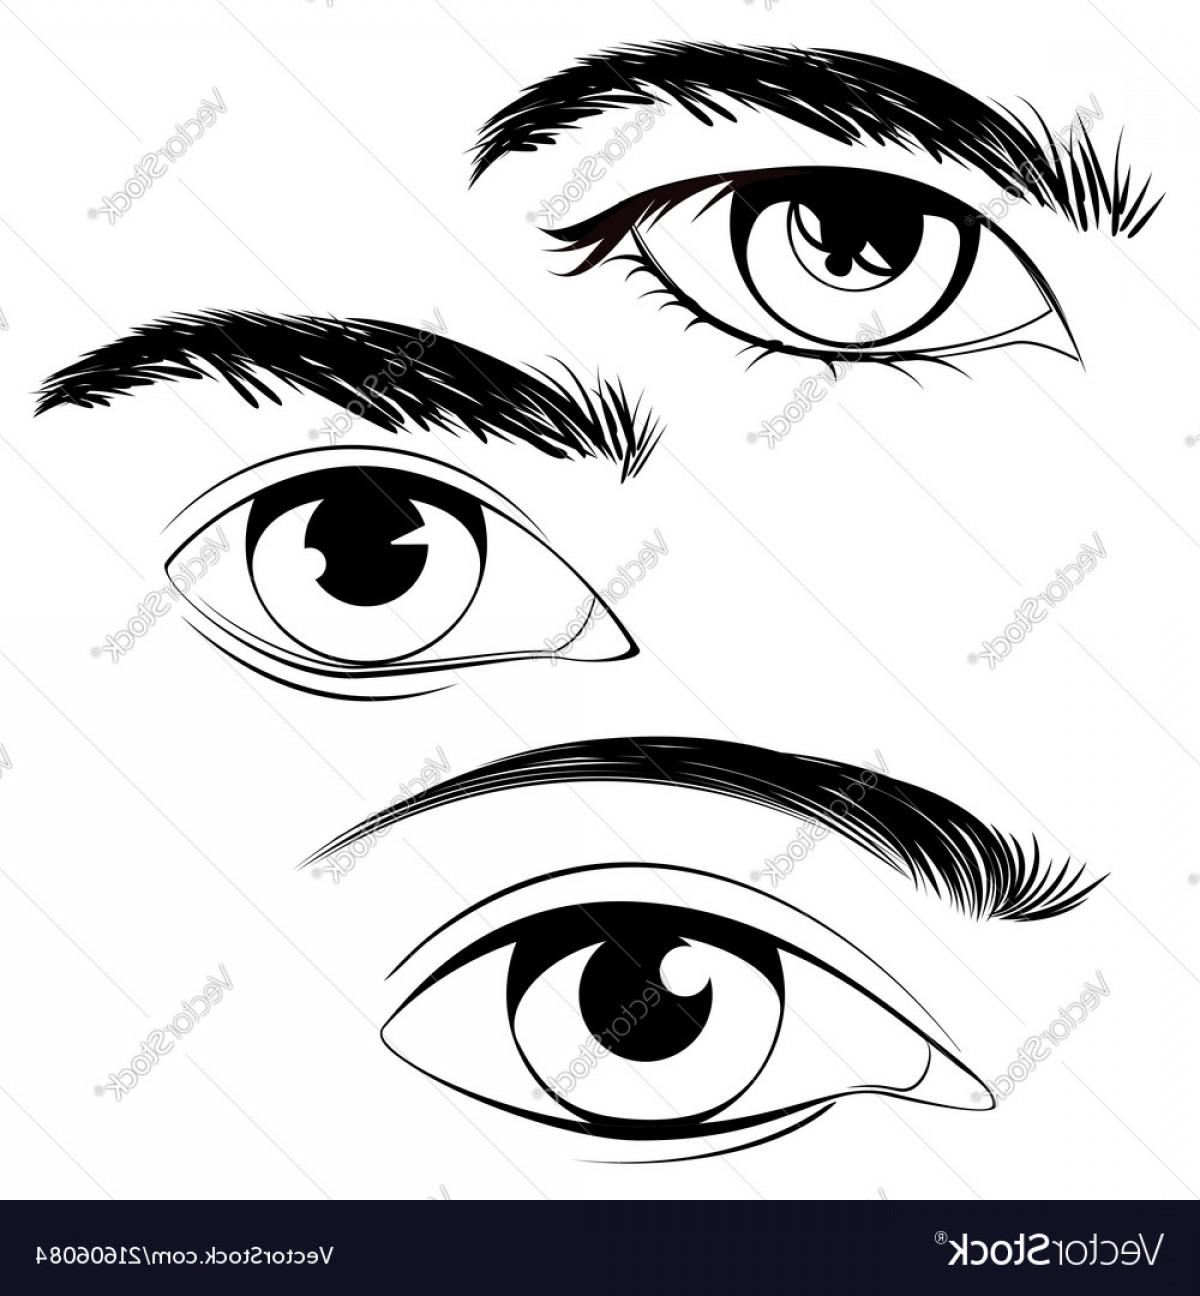 Male Eyes Vector Graphic: Male Eyes With Eyebrows Vector